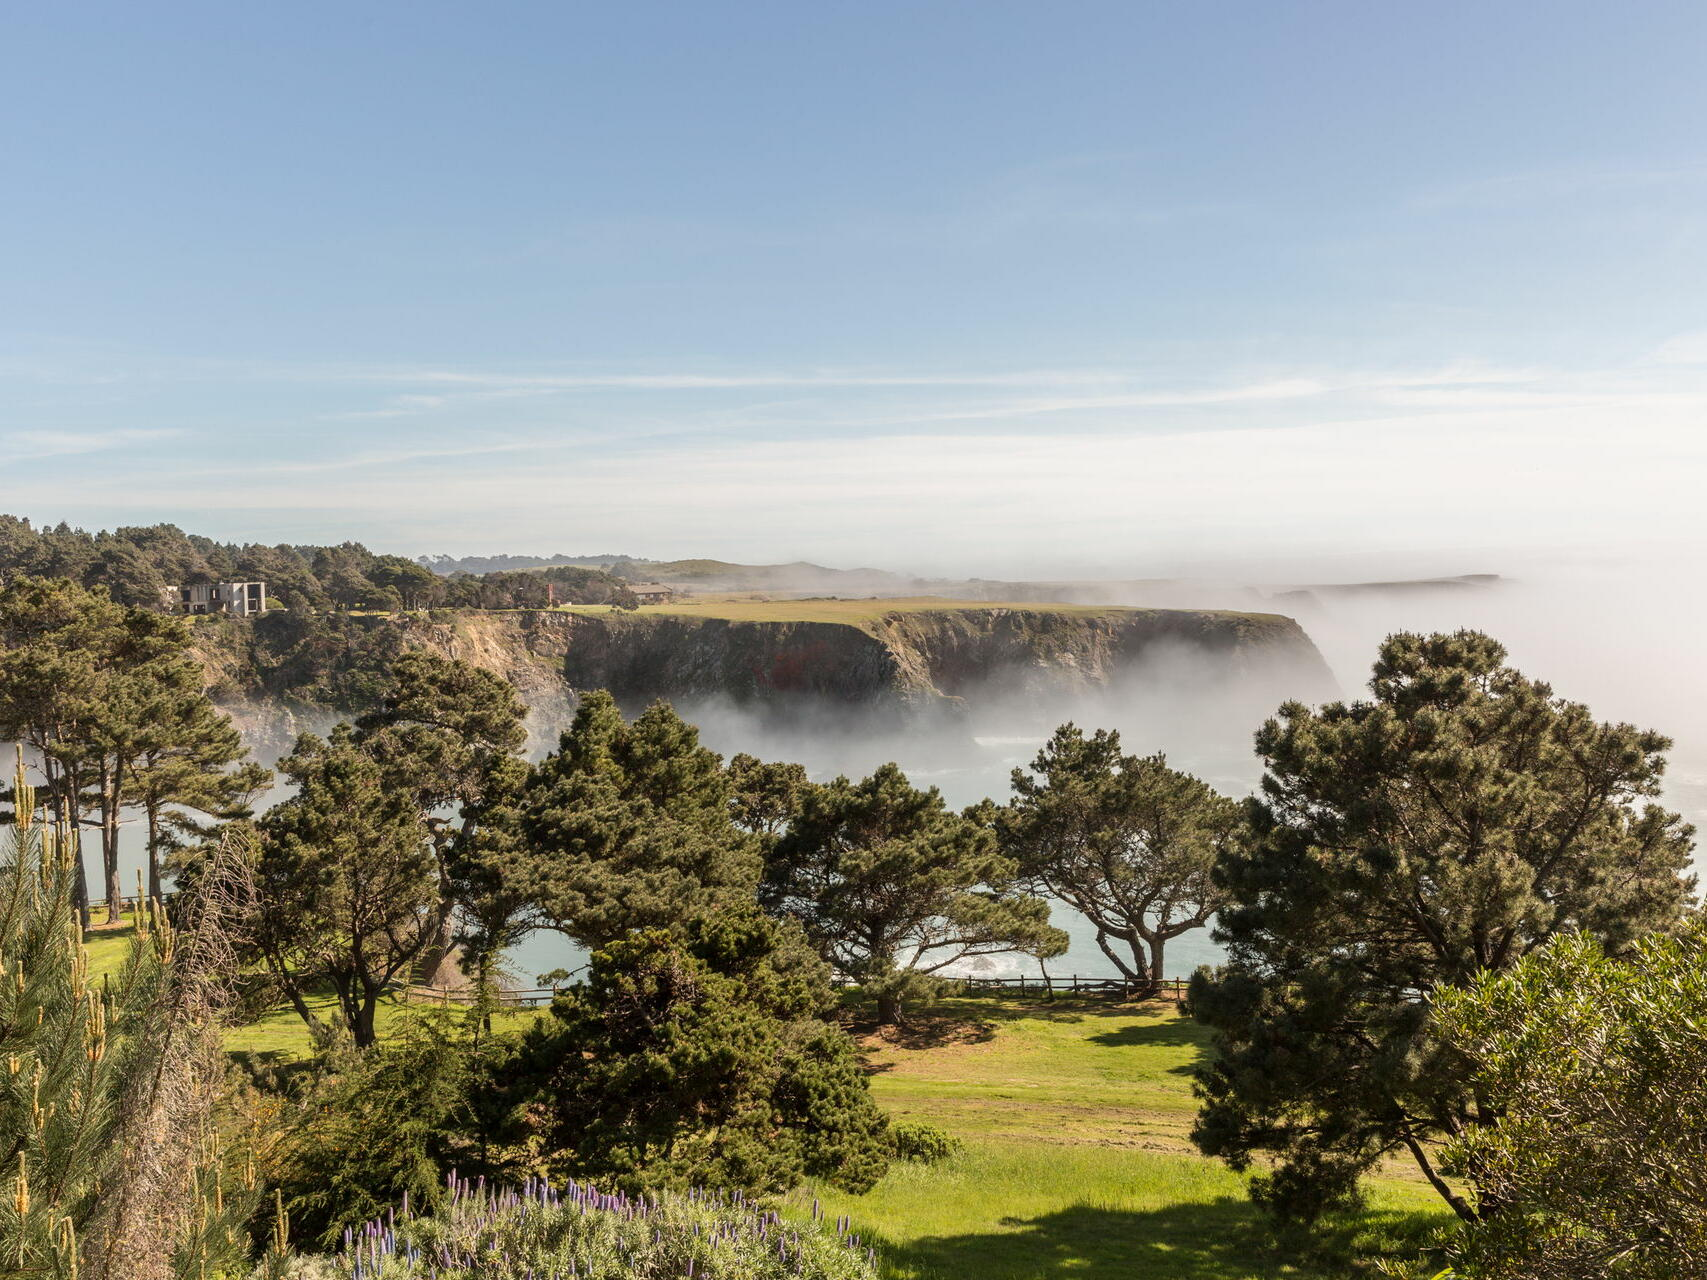 The coastline covered in mist at The Heritage House Resort